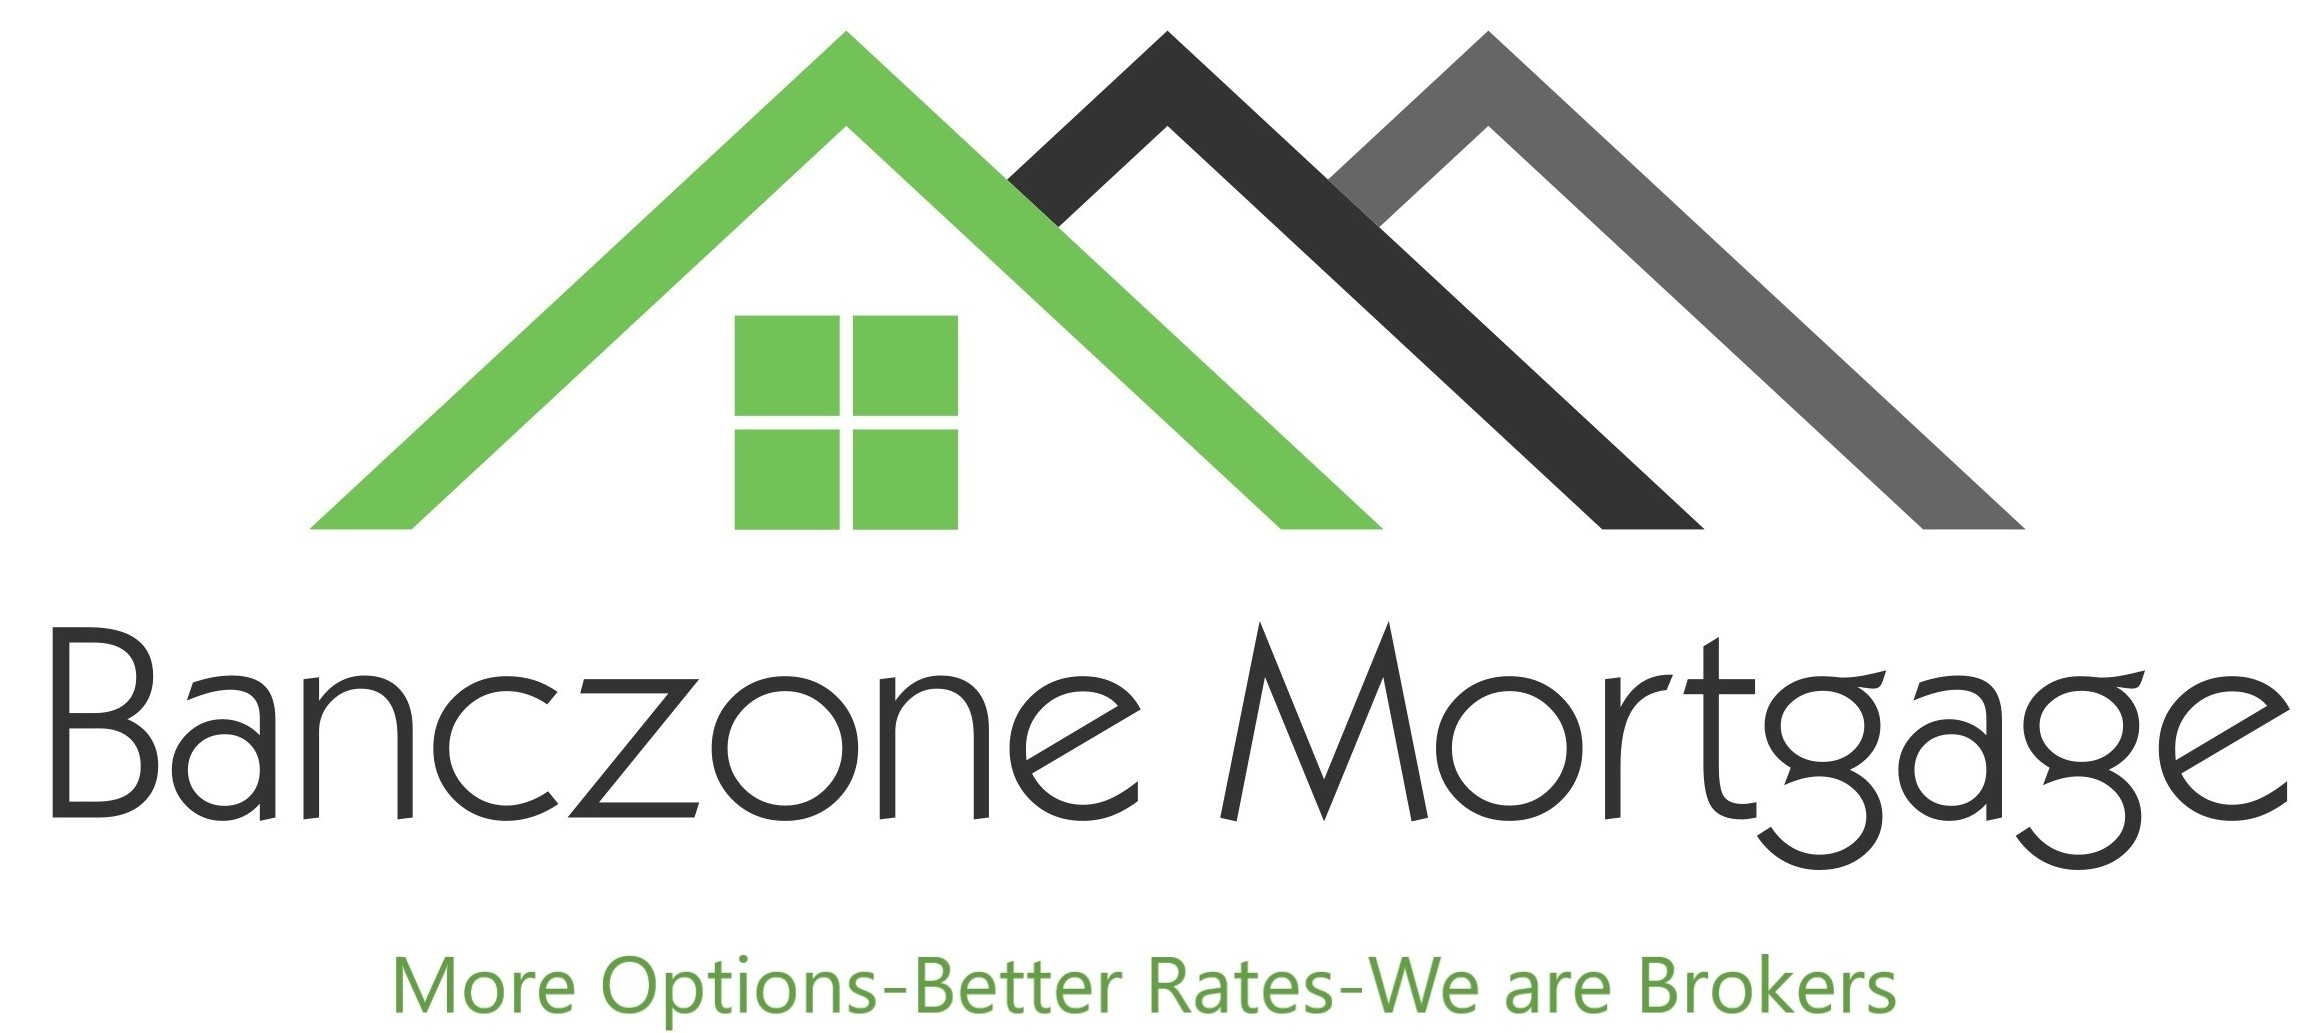 Banczone Mortgage